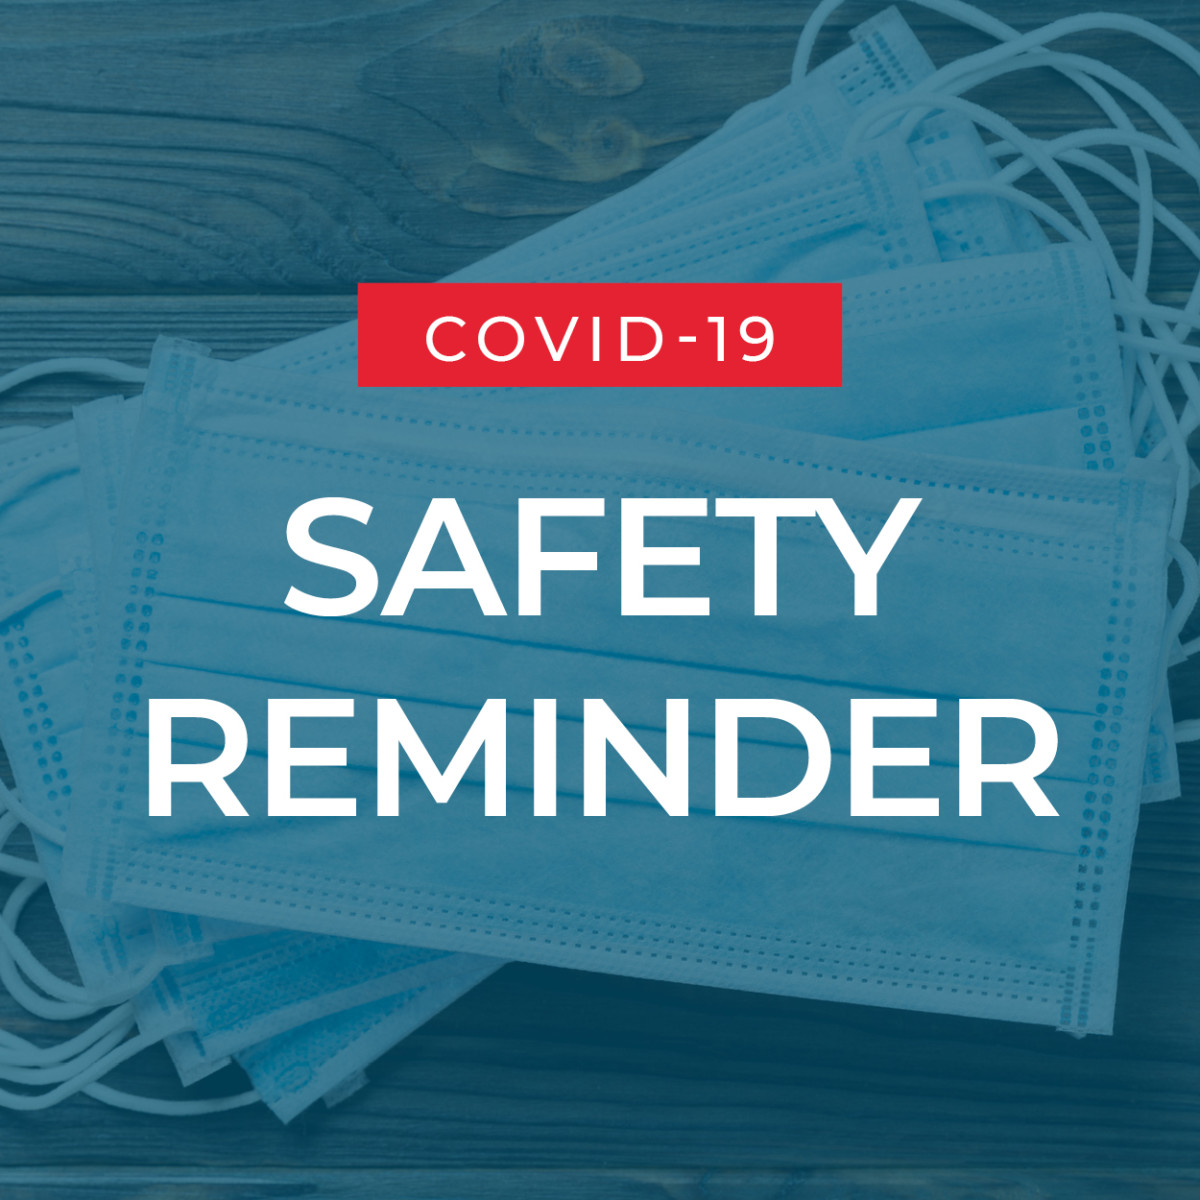 COVID-19 Safety Reminder